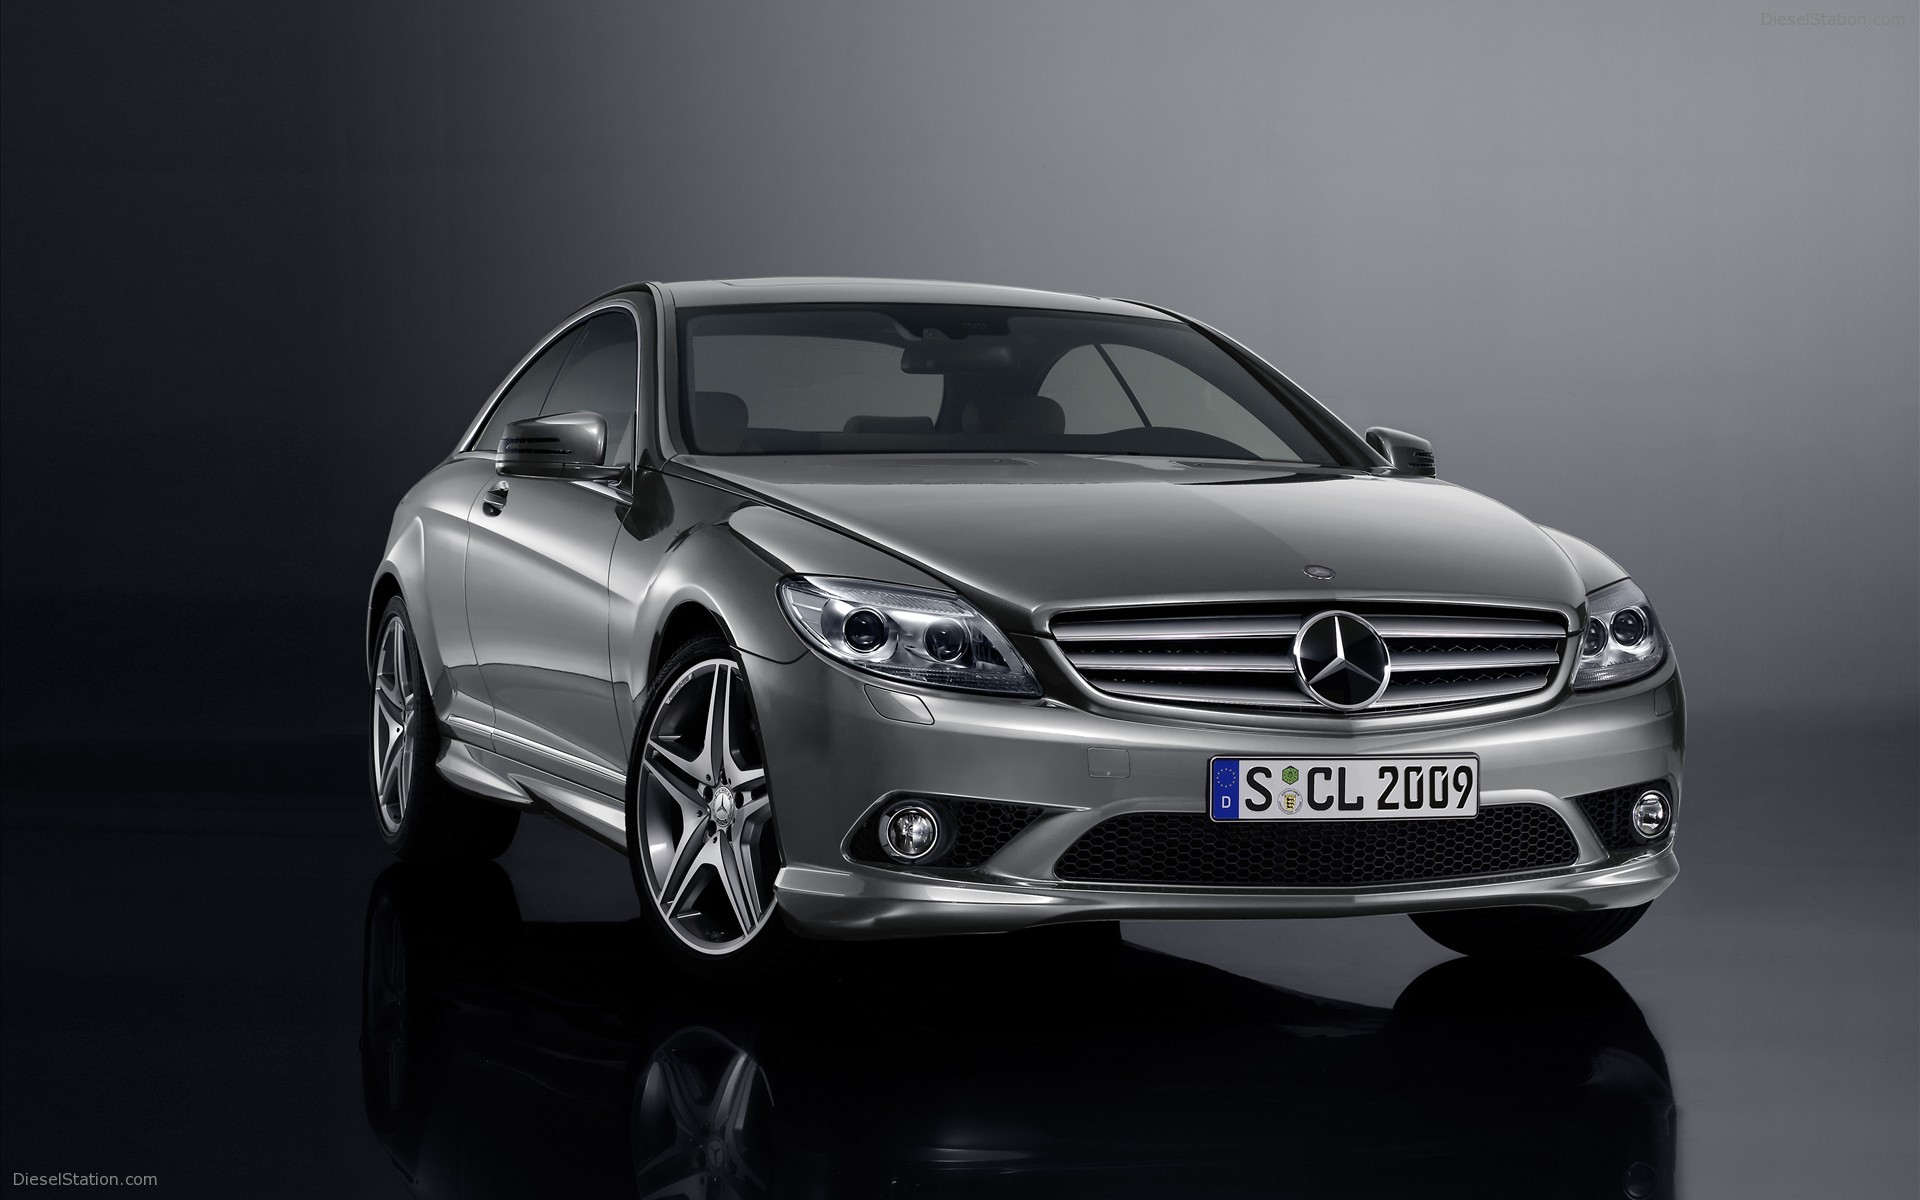 displaying 16 images for 2014 mercedes benz s class amg. Cars Review. Best American Auto & Cars Review